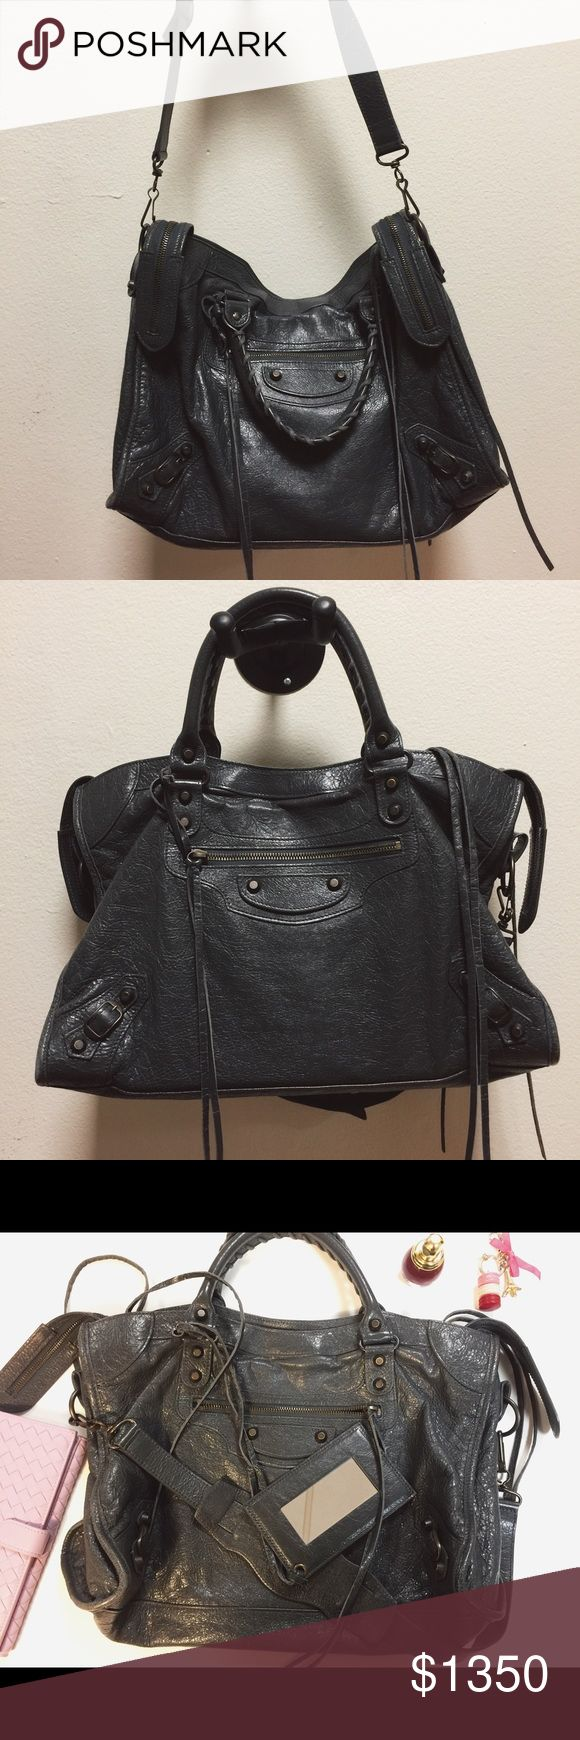 Balenciaga Classic City bag Dark grey, soft lambskin with brass hardware, slightly used, comes with mirror and dust bag and authenticity card, made in Italy. Balenciaga Bags Shoulder Bags